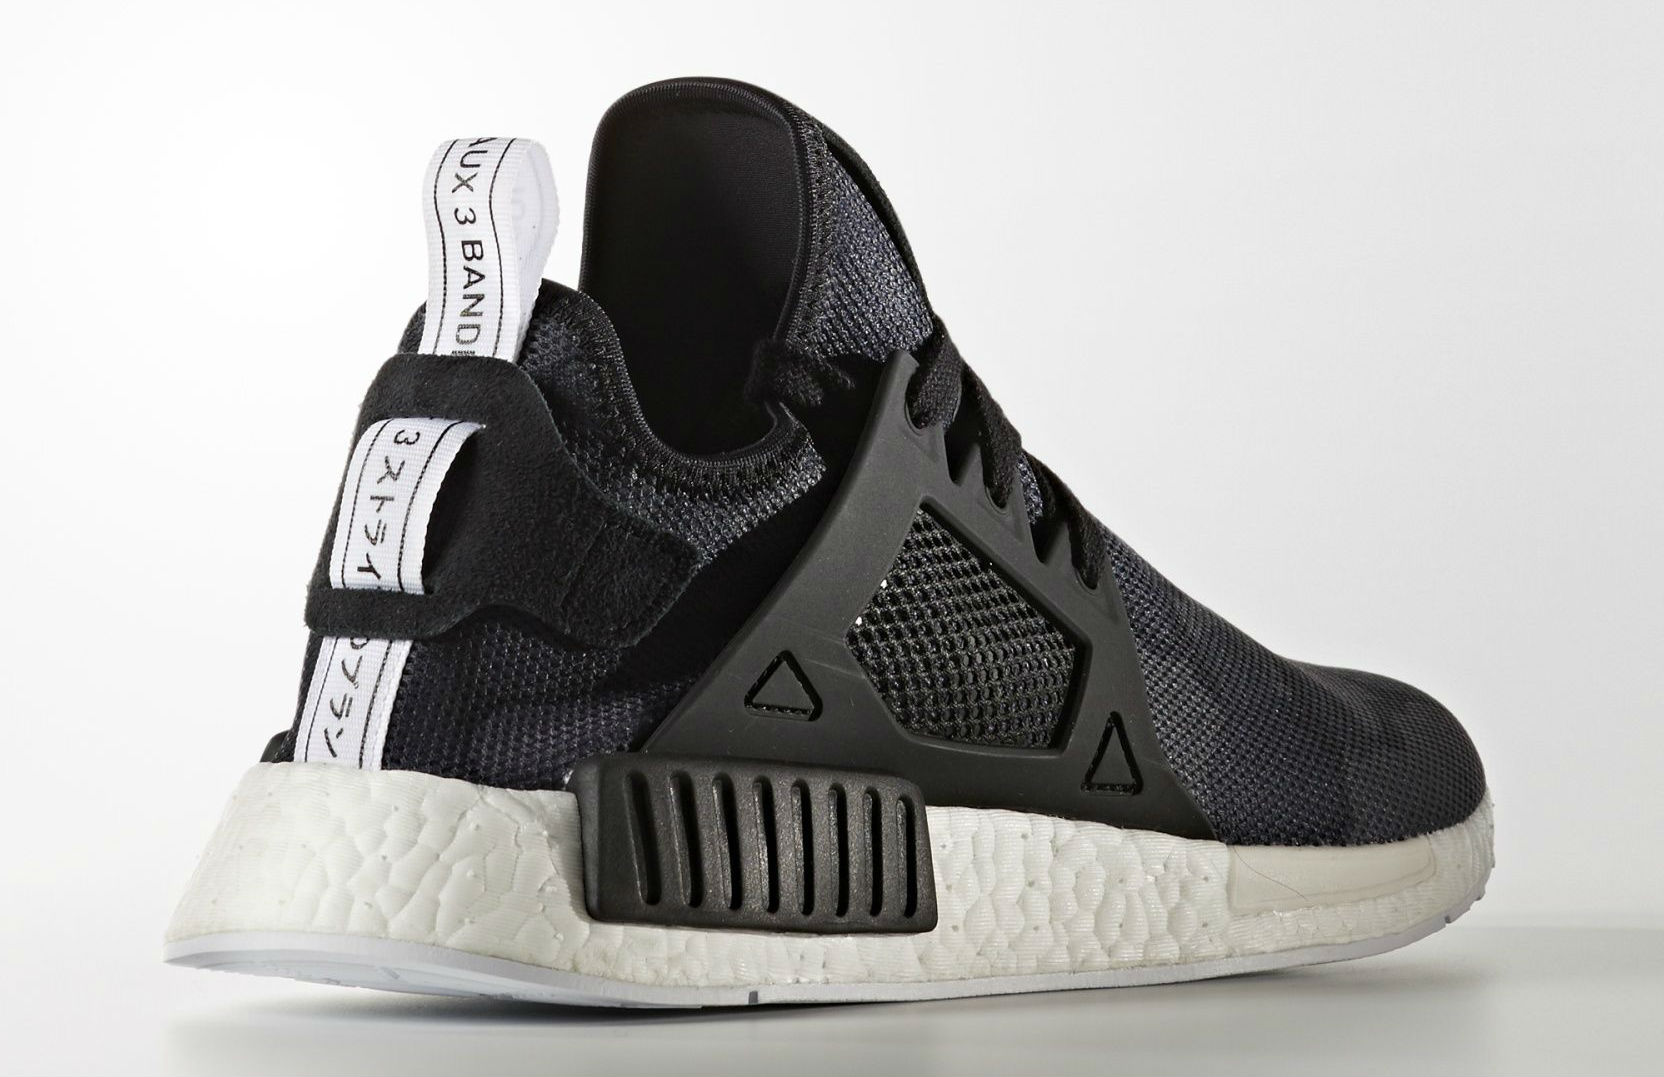 sale retailer 391f0 66802 adidas NMD XR1 Camo Pack Fall 2016 | Sole Collector